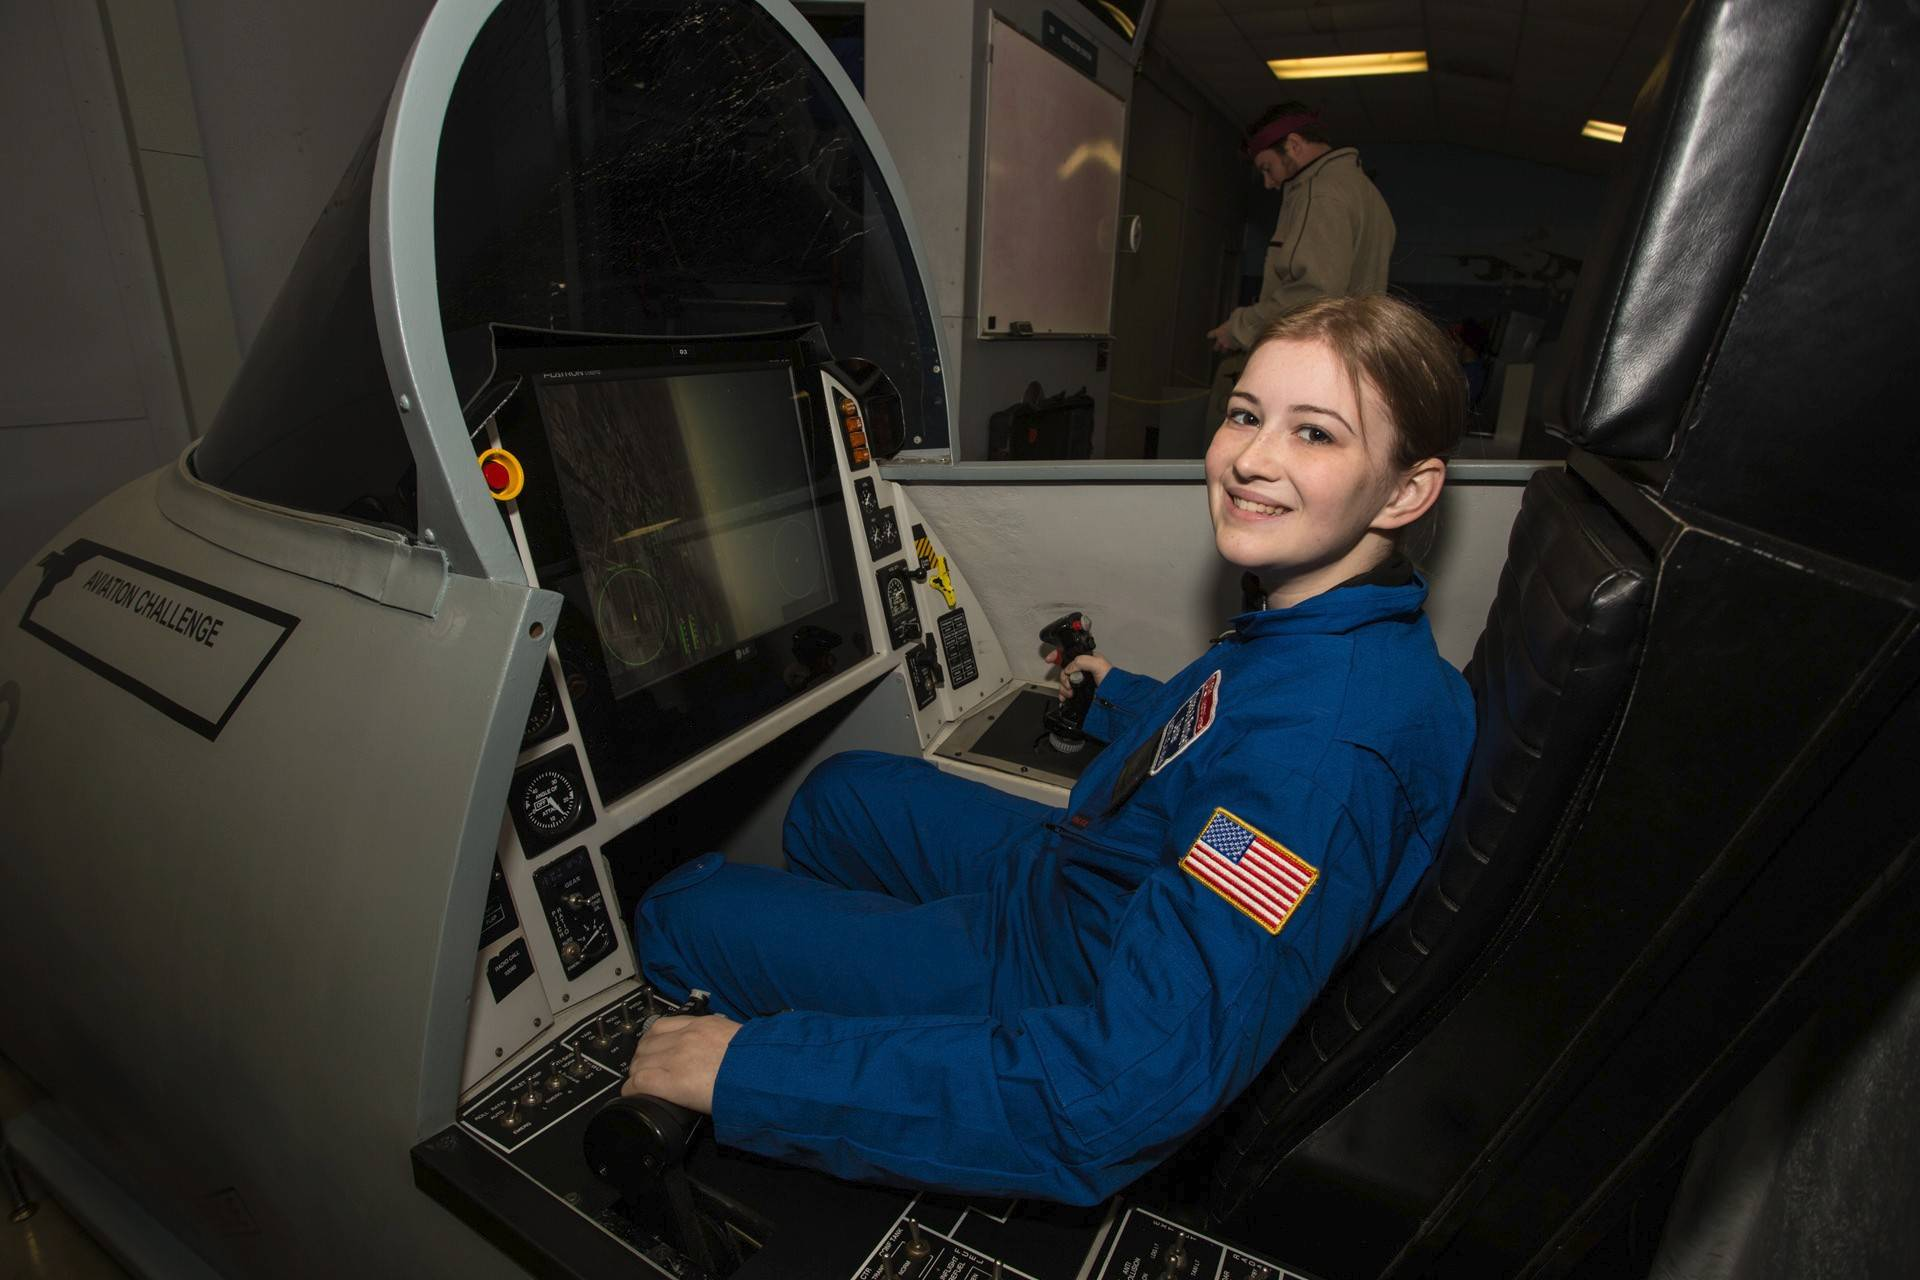 Sabrina Poulsen of Wheeling is at the controls of a space shuttle simulator aviation program that reinforces leadership, teamwork and decision-making while building realistic piloting skills.